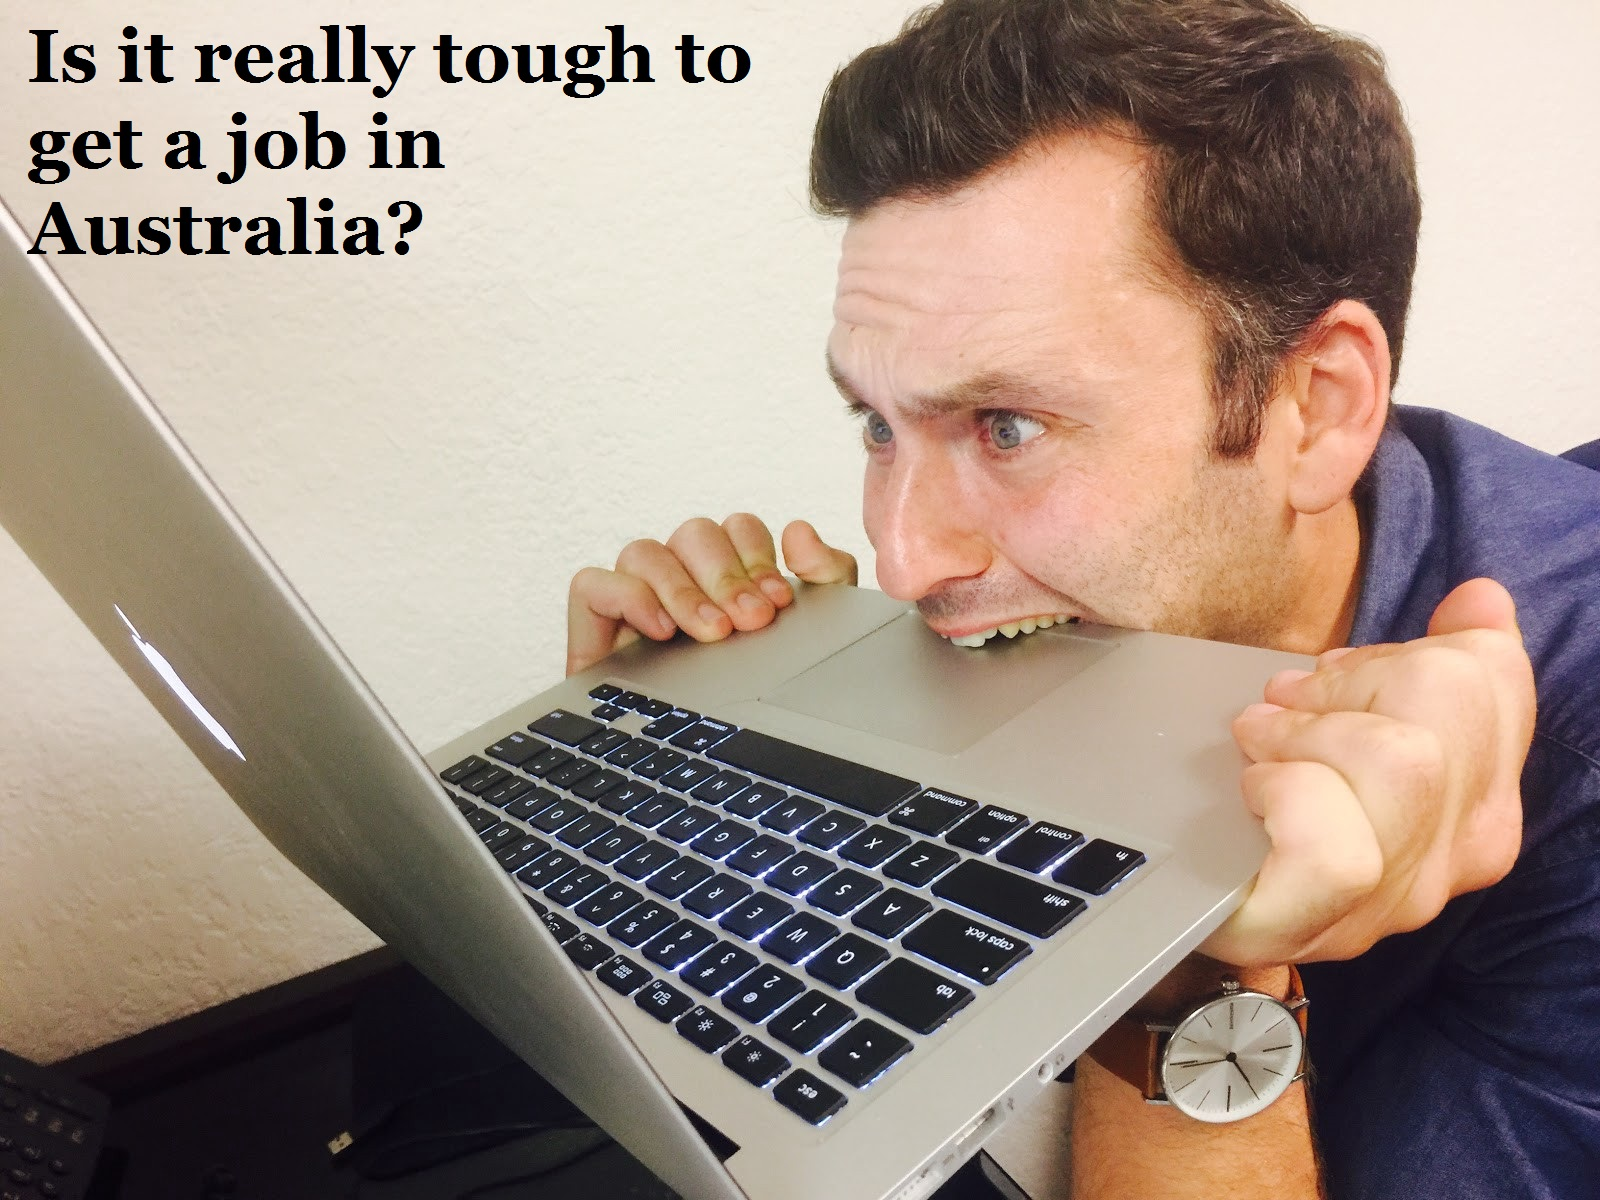 Is it really tough to get a job in Australia?